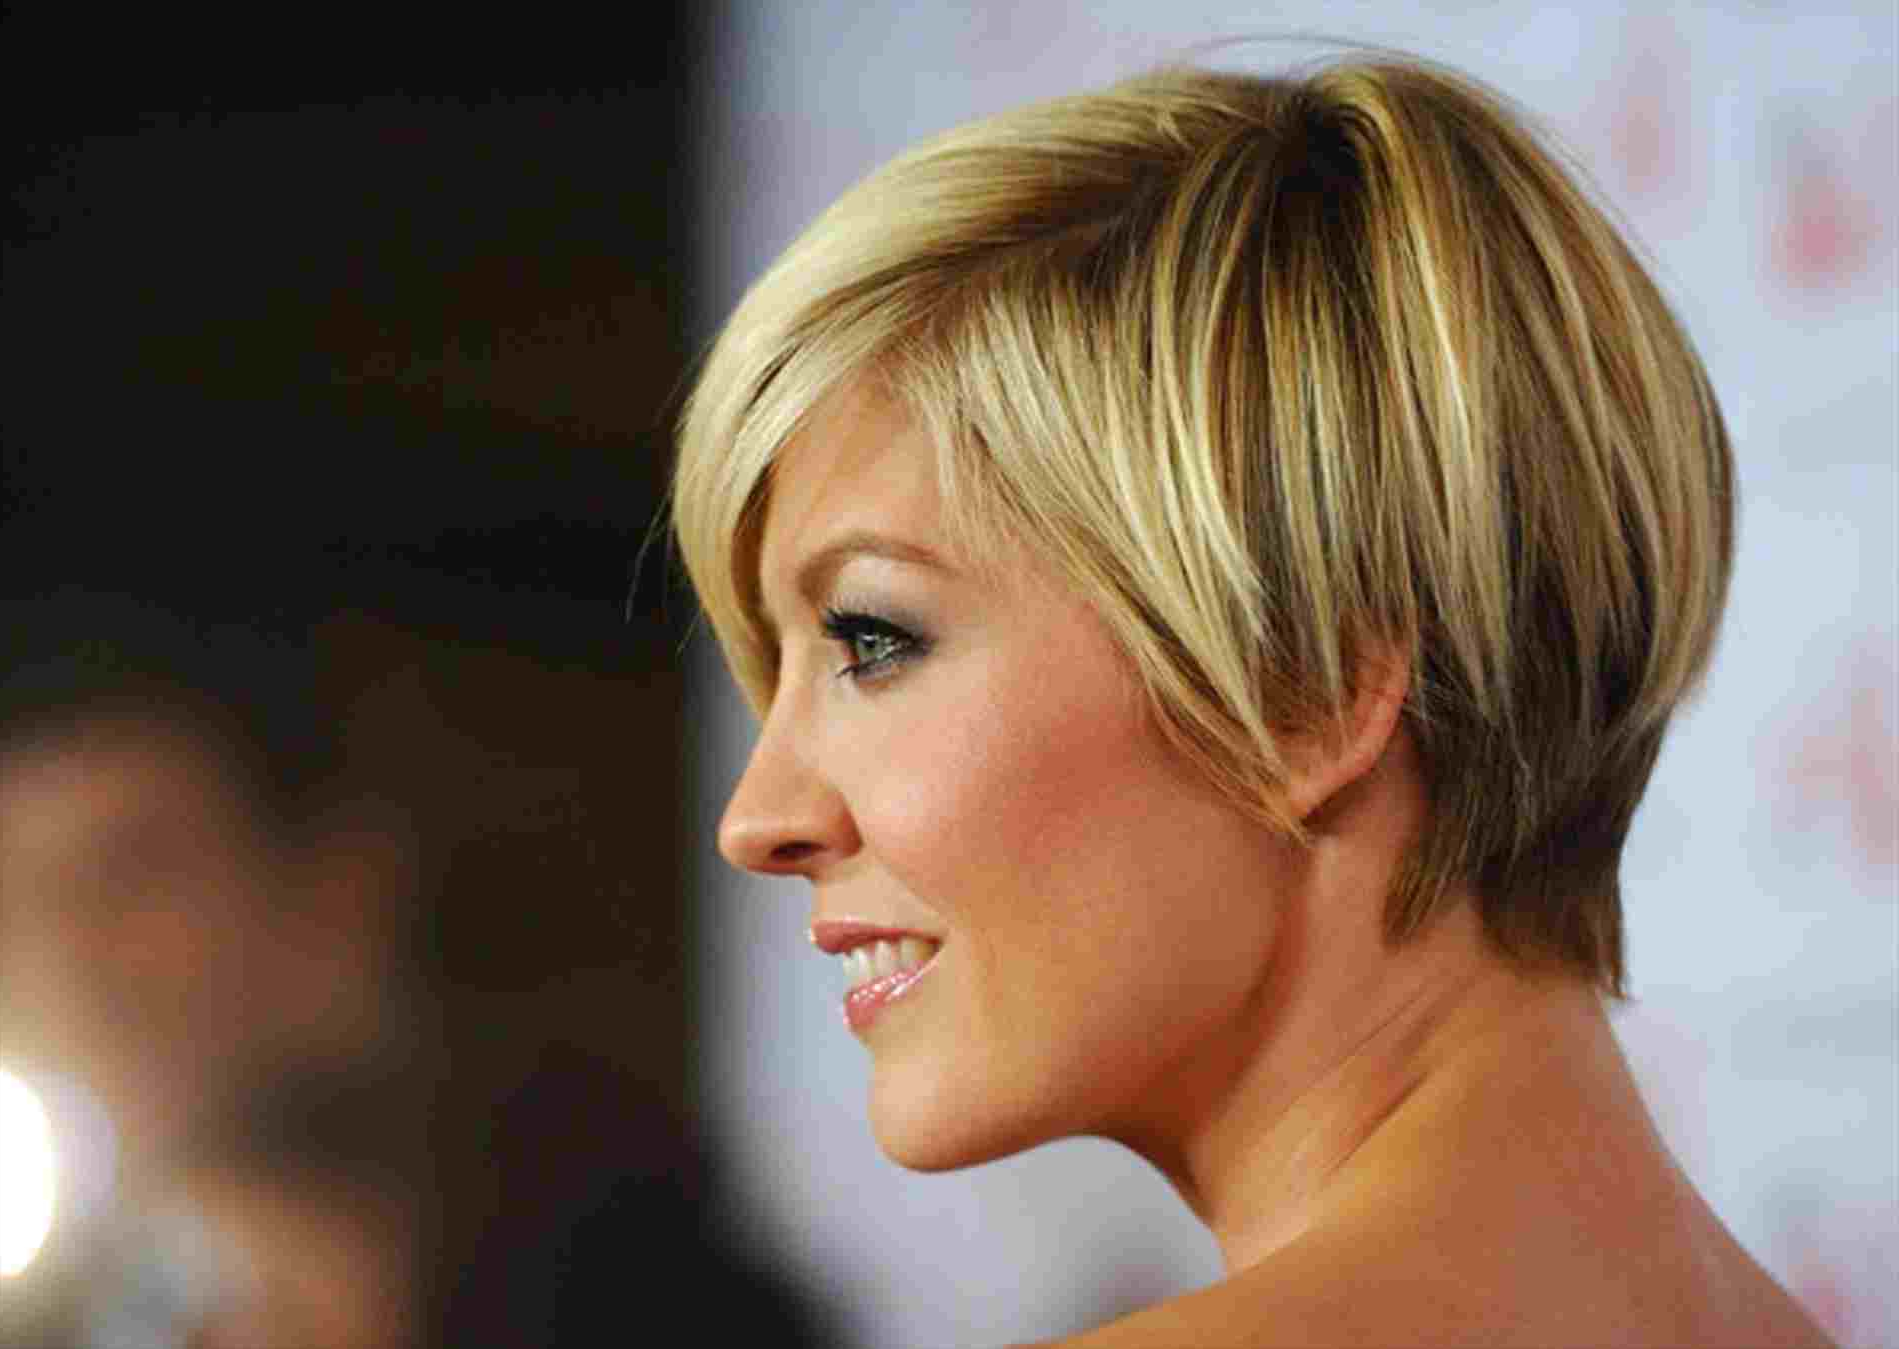 Gray-Or-Silver-Hair-Grey-Rhpinterestcouk-Why-Funky-Short-Hairstyles throughout Short Funky Hairstyles For Over 40